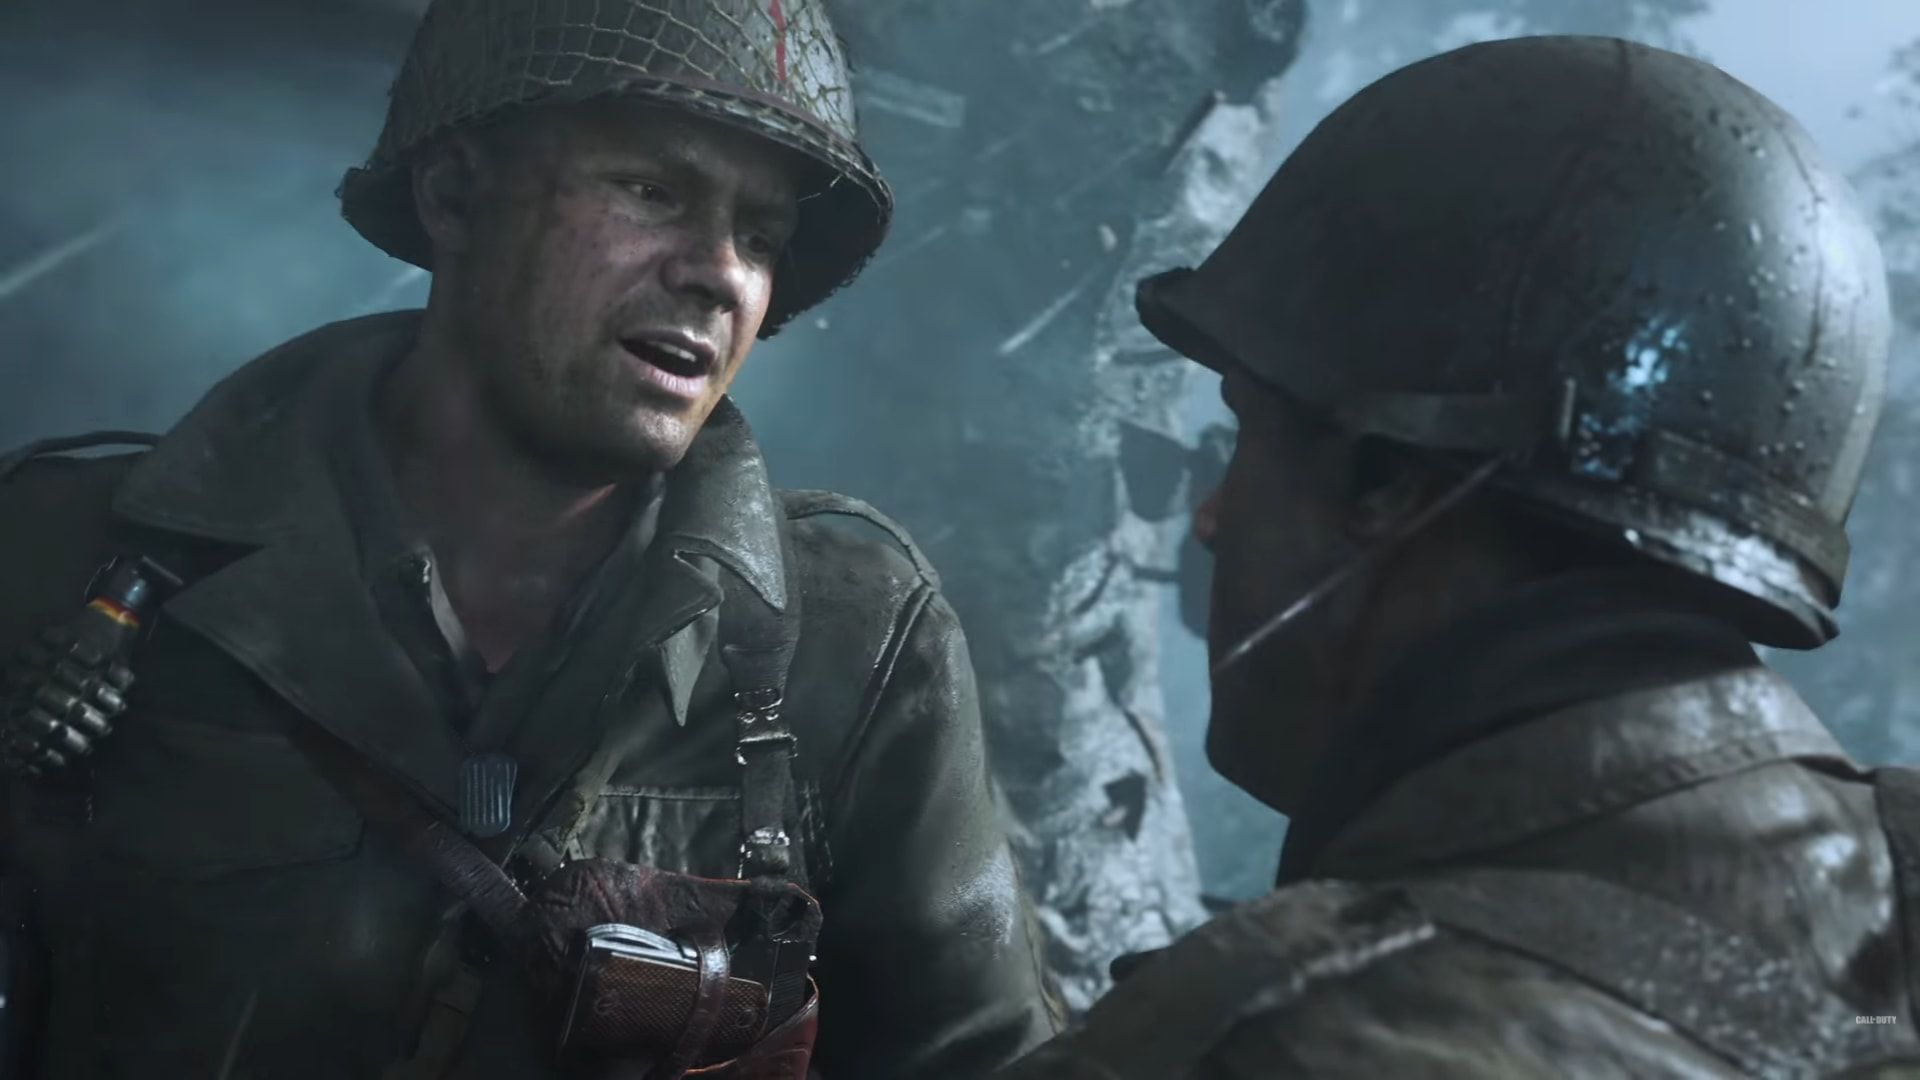 Call Of Duty Wwii Wallpaper: Call Of Duty WWII Wallpapers Images Photos Pictures